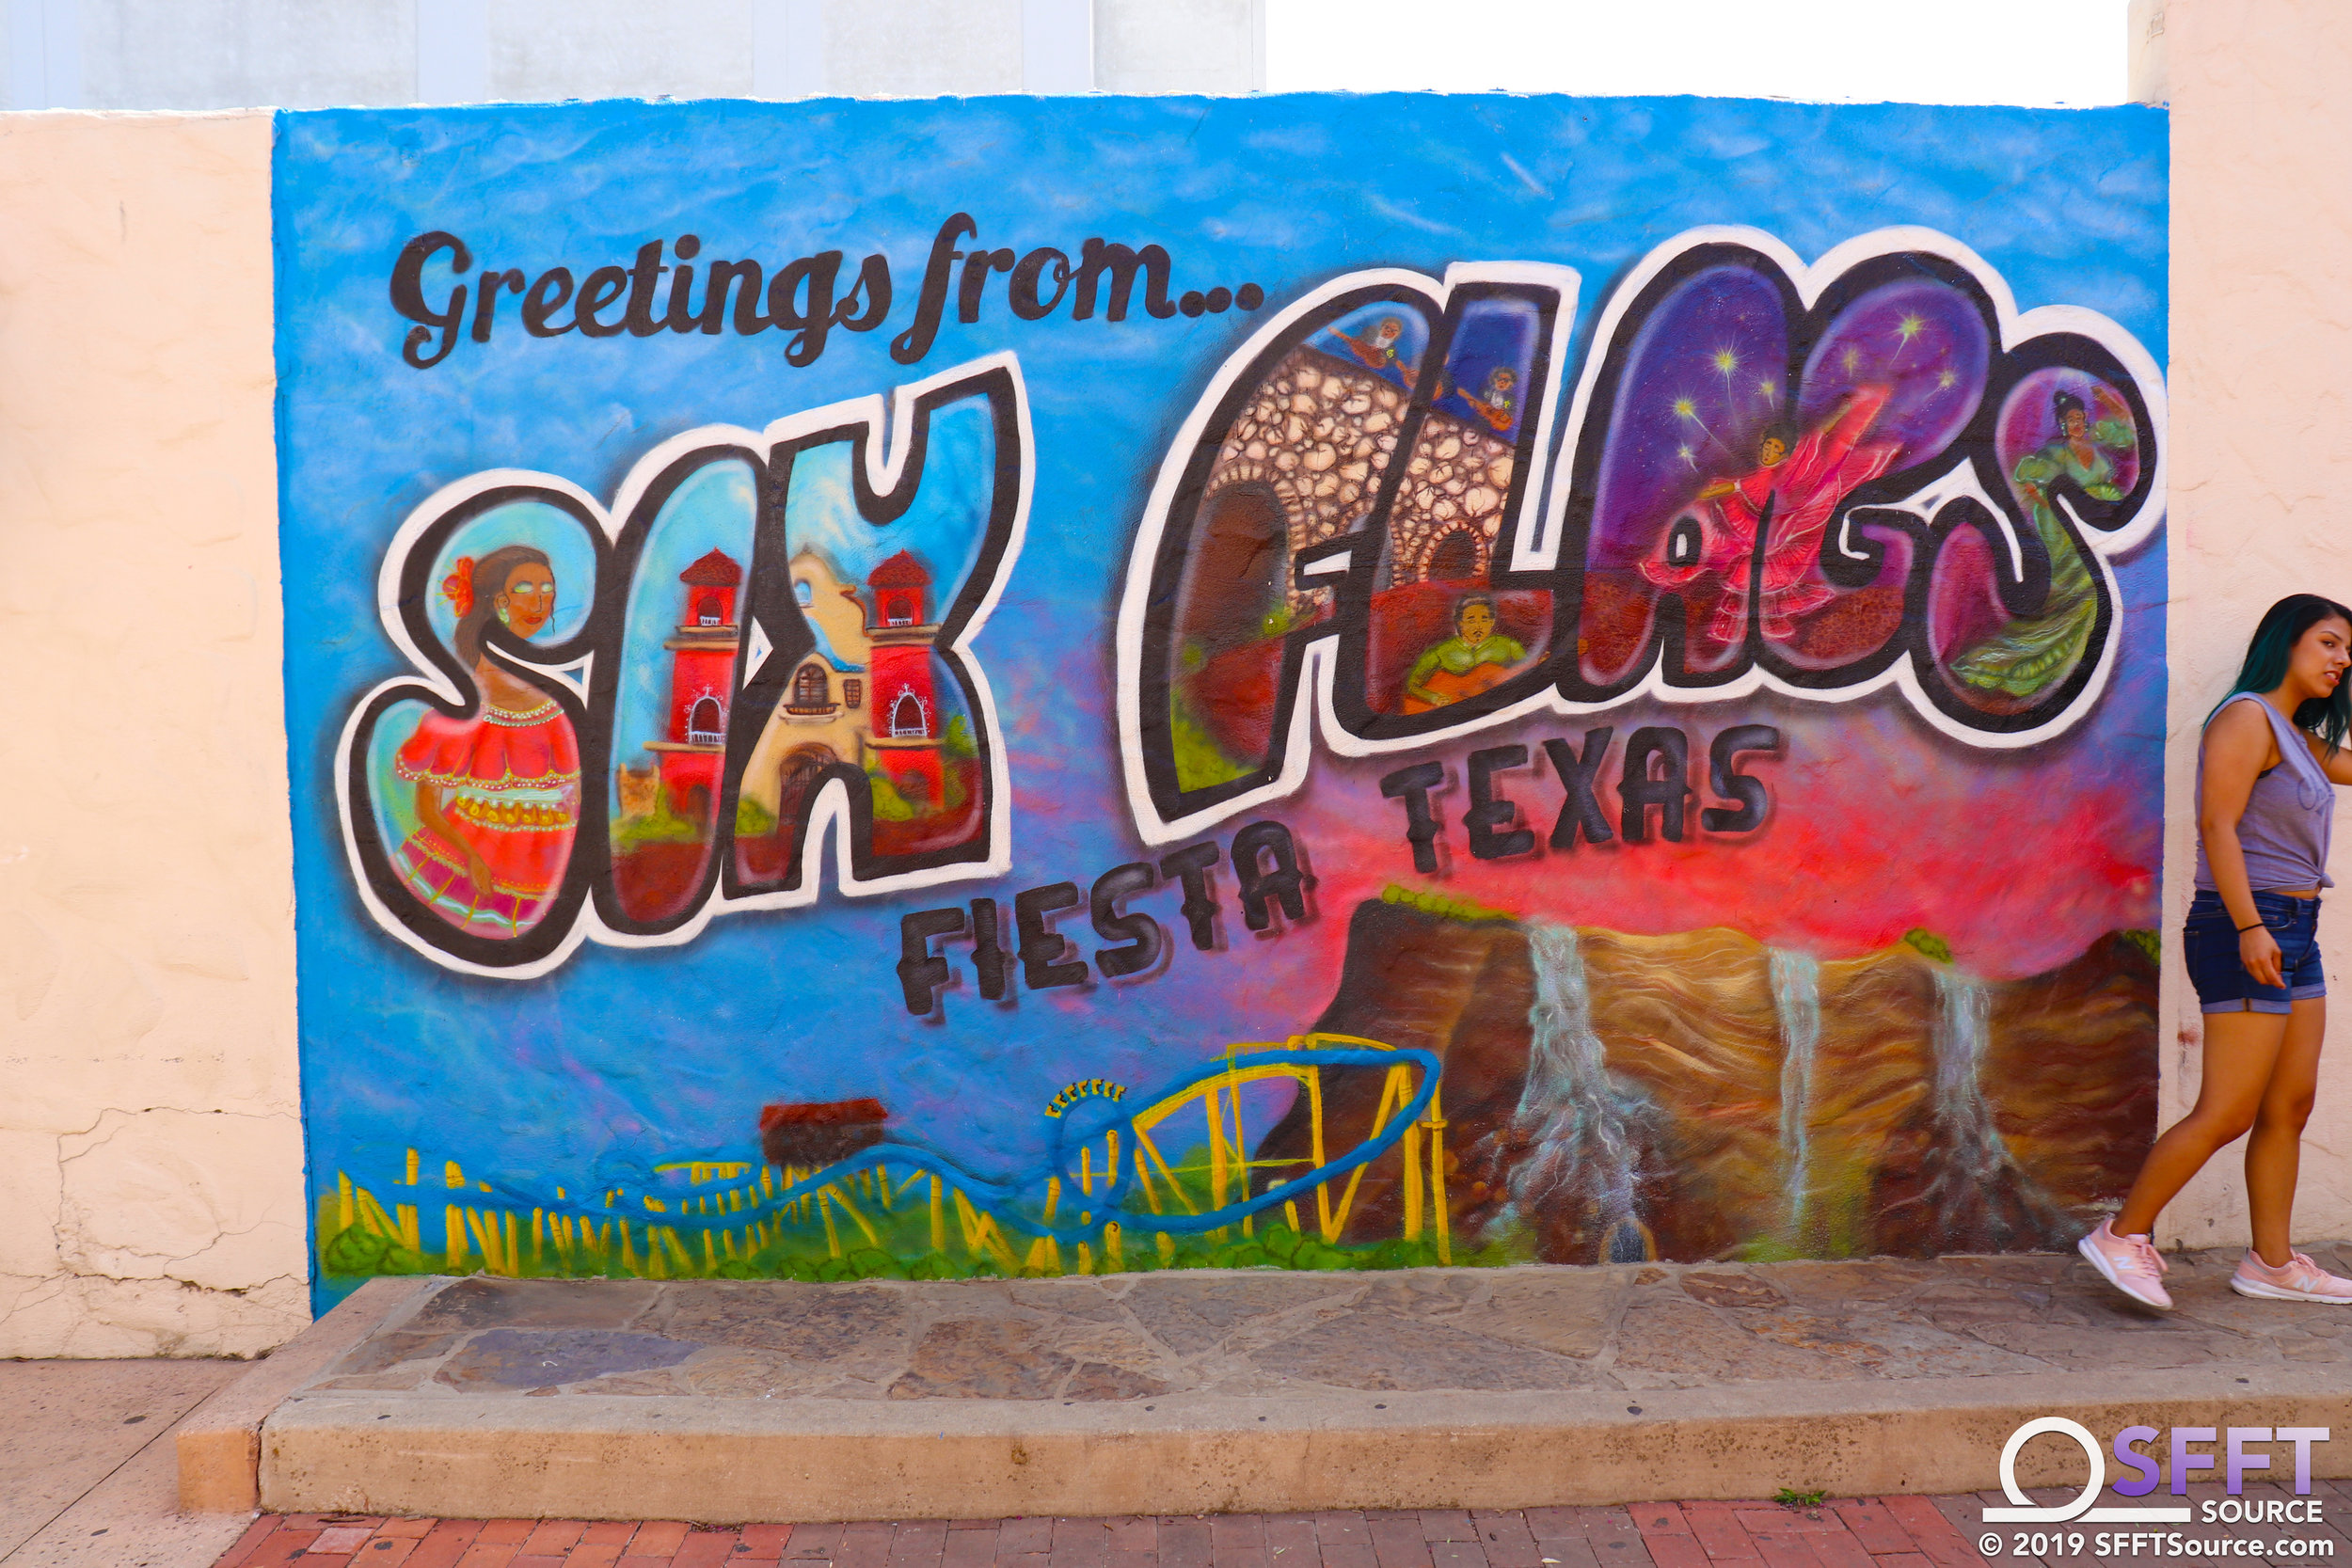 A hand-painted mural was added to Los Festivales in 2019.